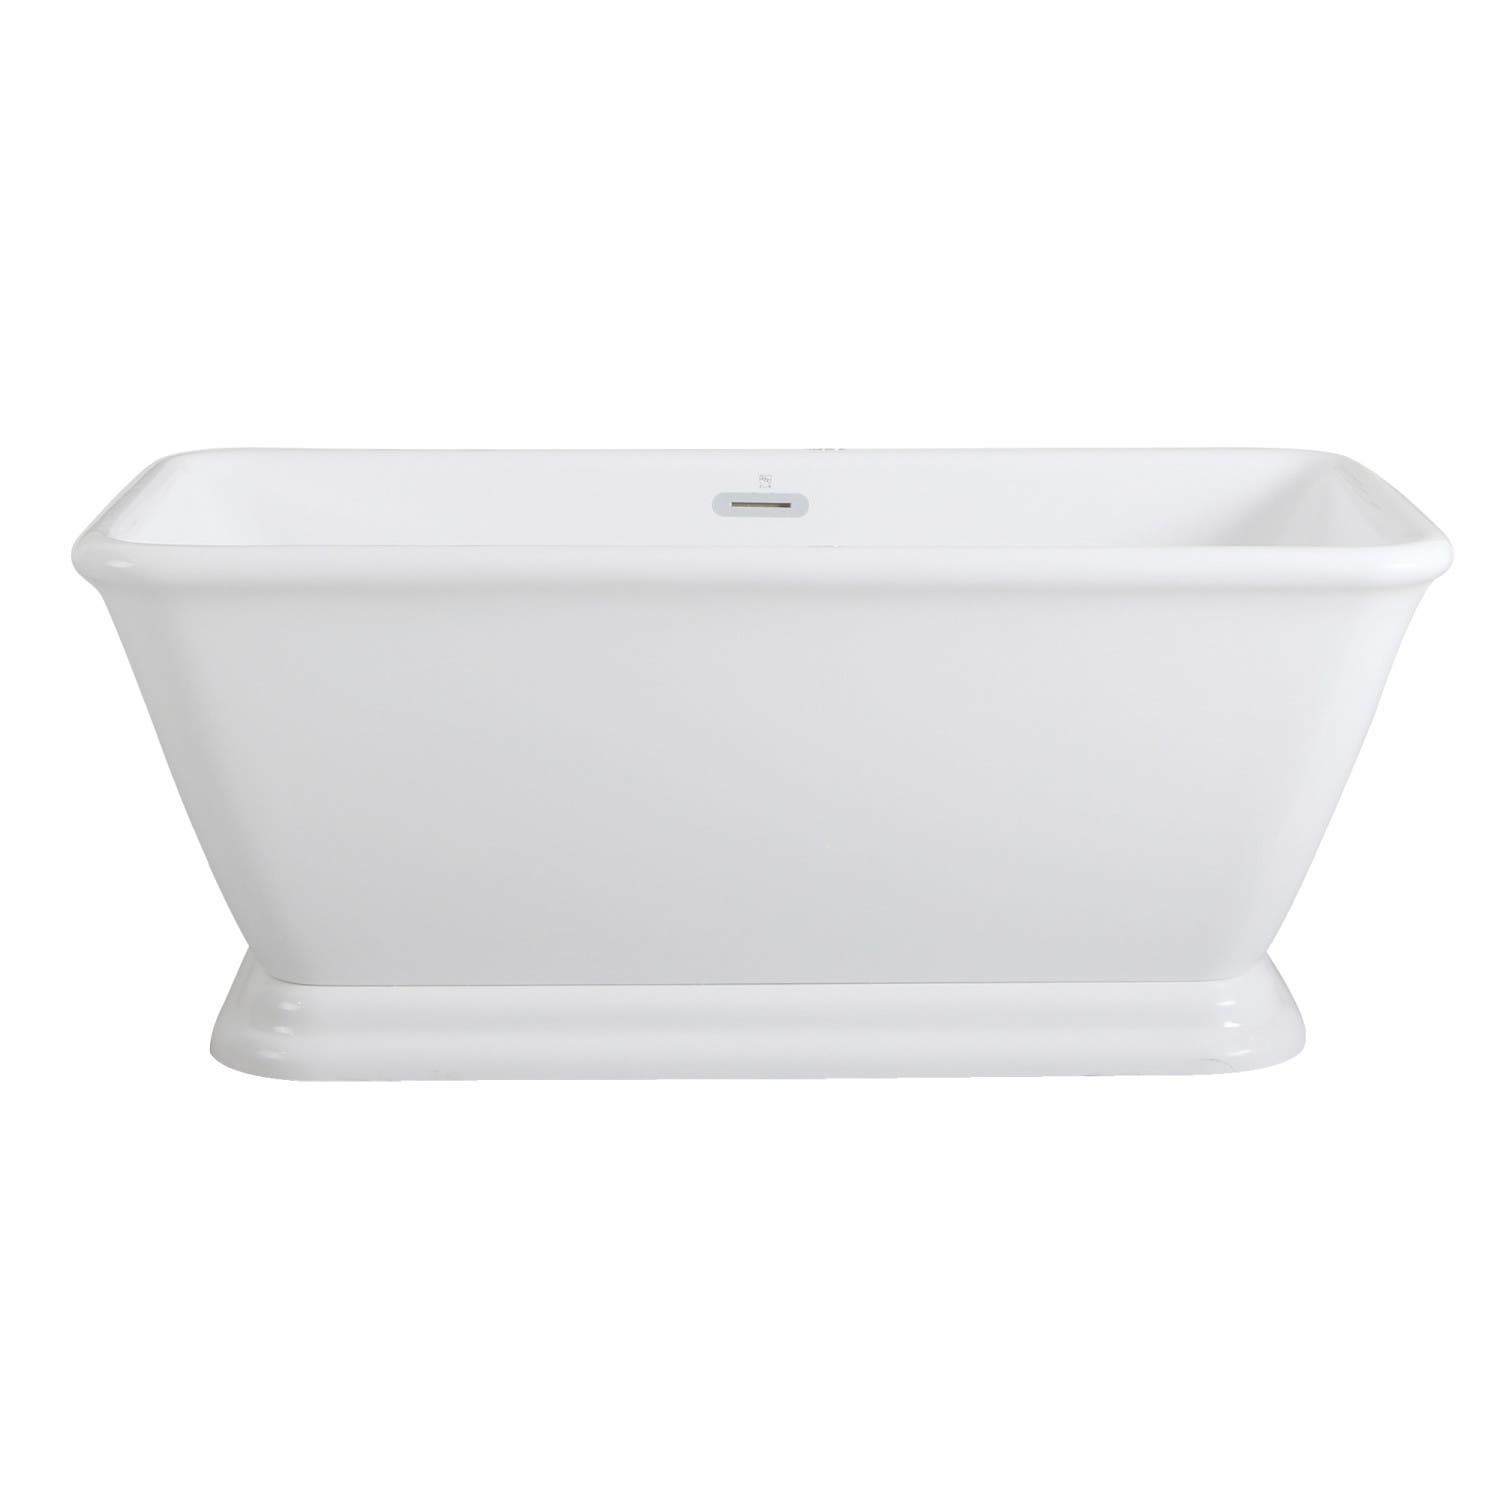 Aqua Eden VTSQ602824 60-Inch Acrylic Double Ended Pedestal Tub with Square Overflow and Pop-Up Drain, White